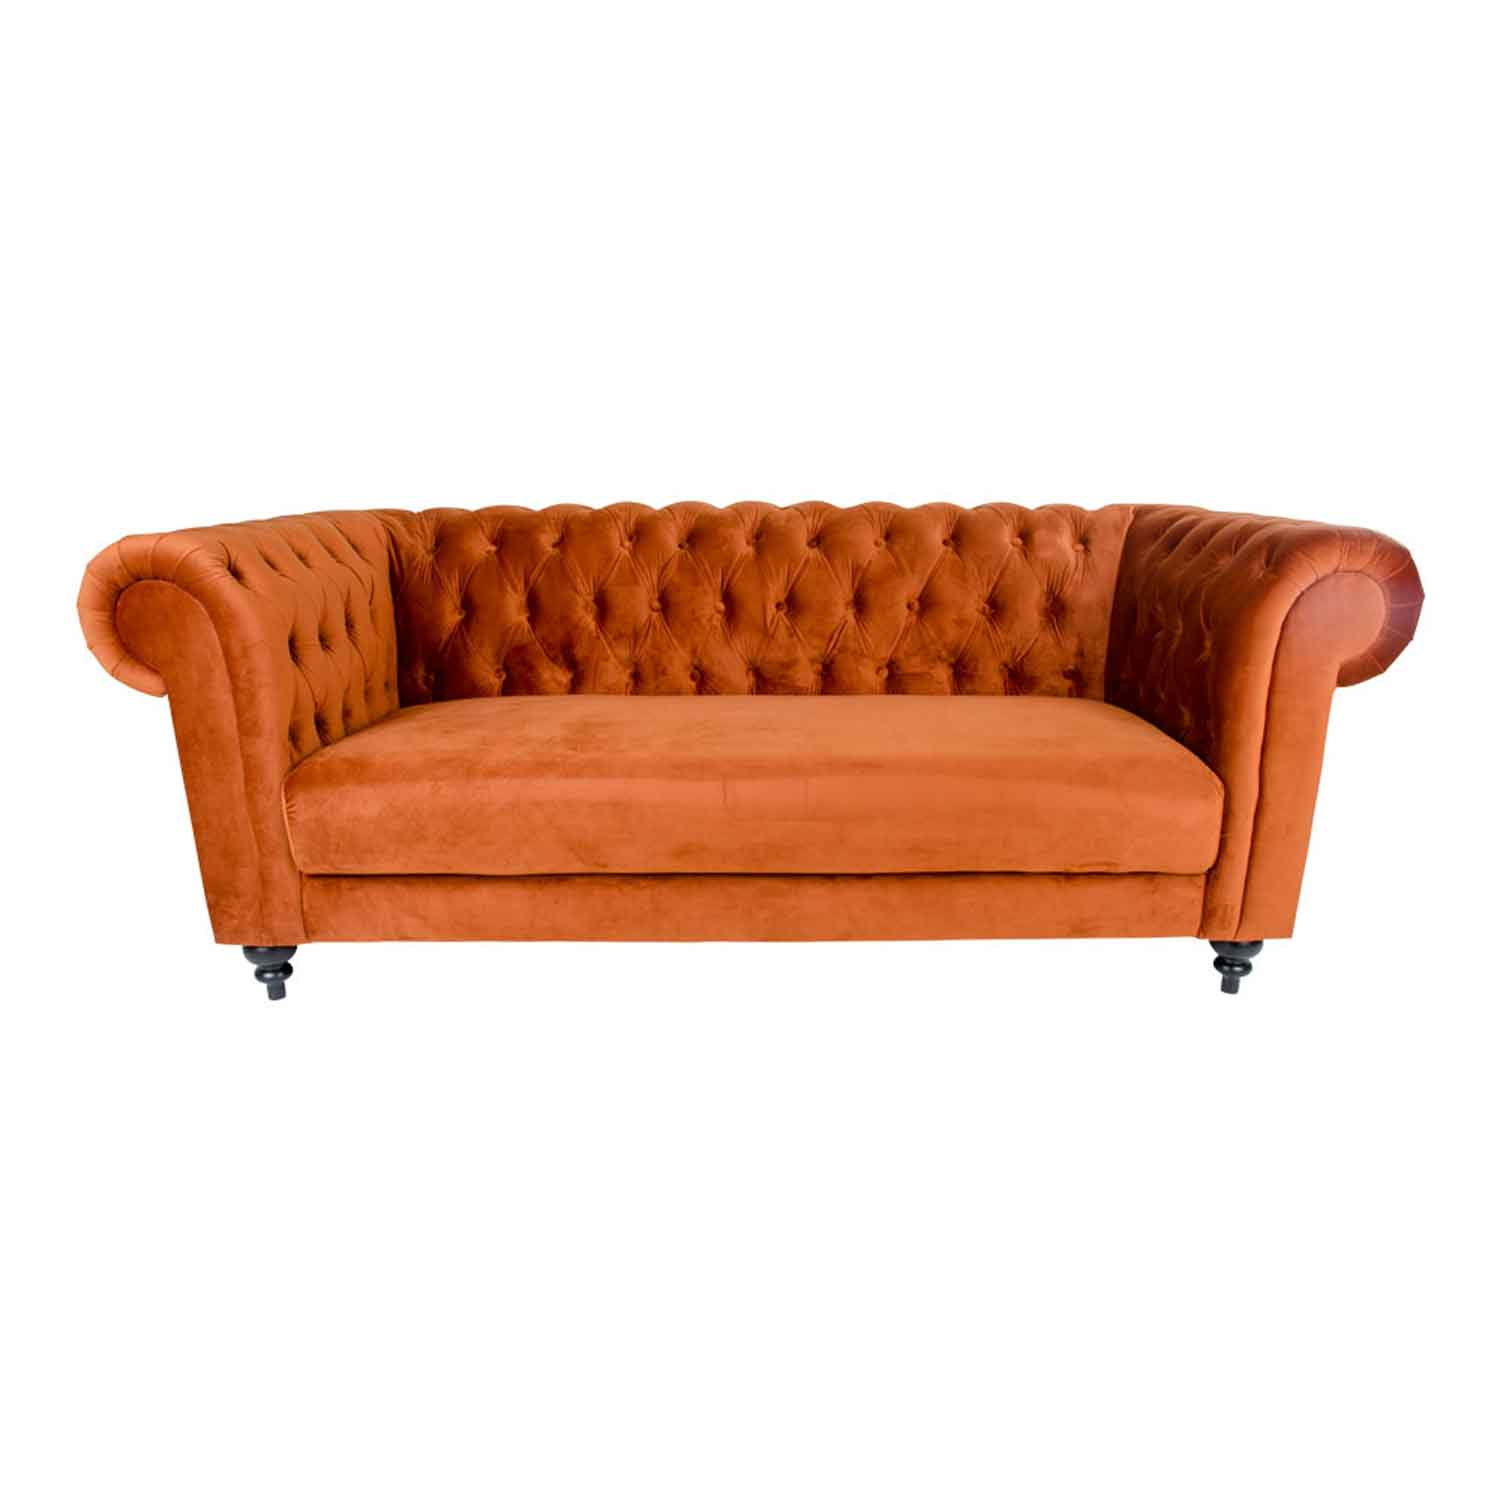 House nordic chester 3 personers sofa, orange velour fra house nordic fra boboonline.dk